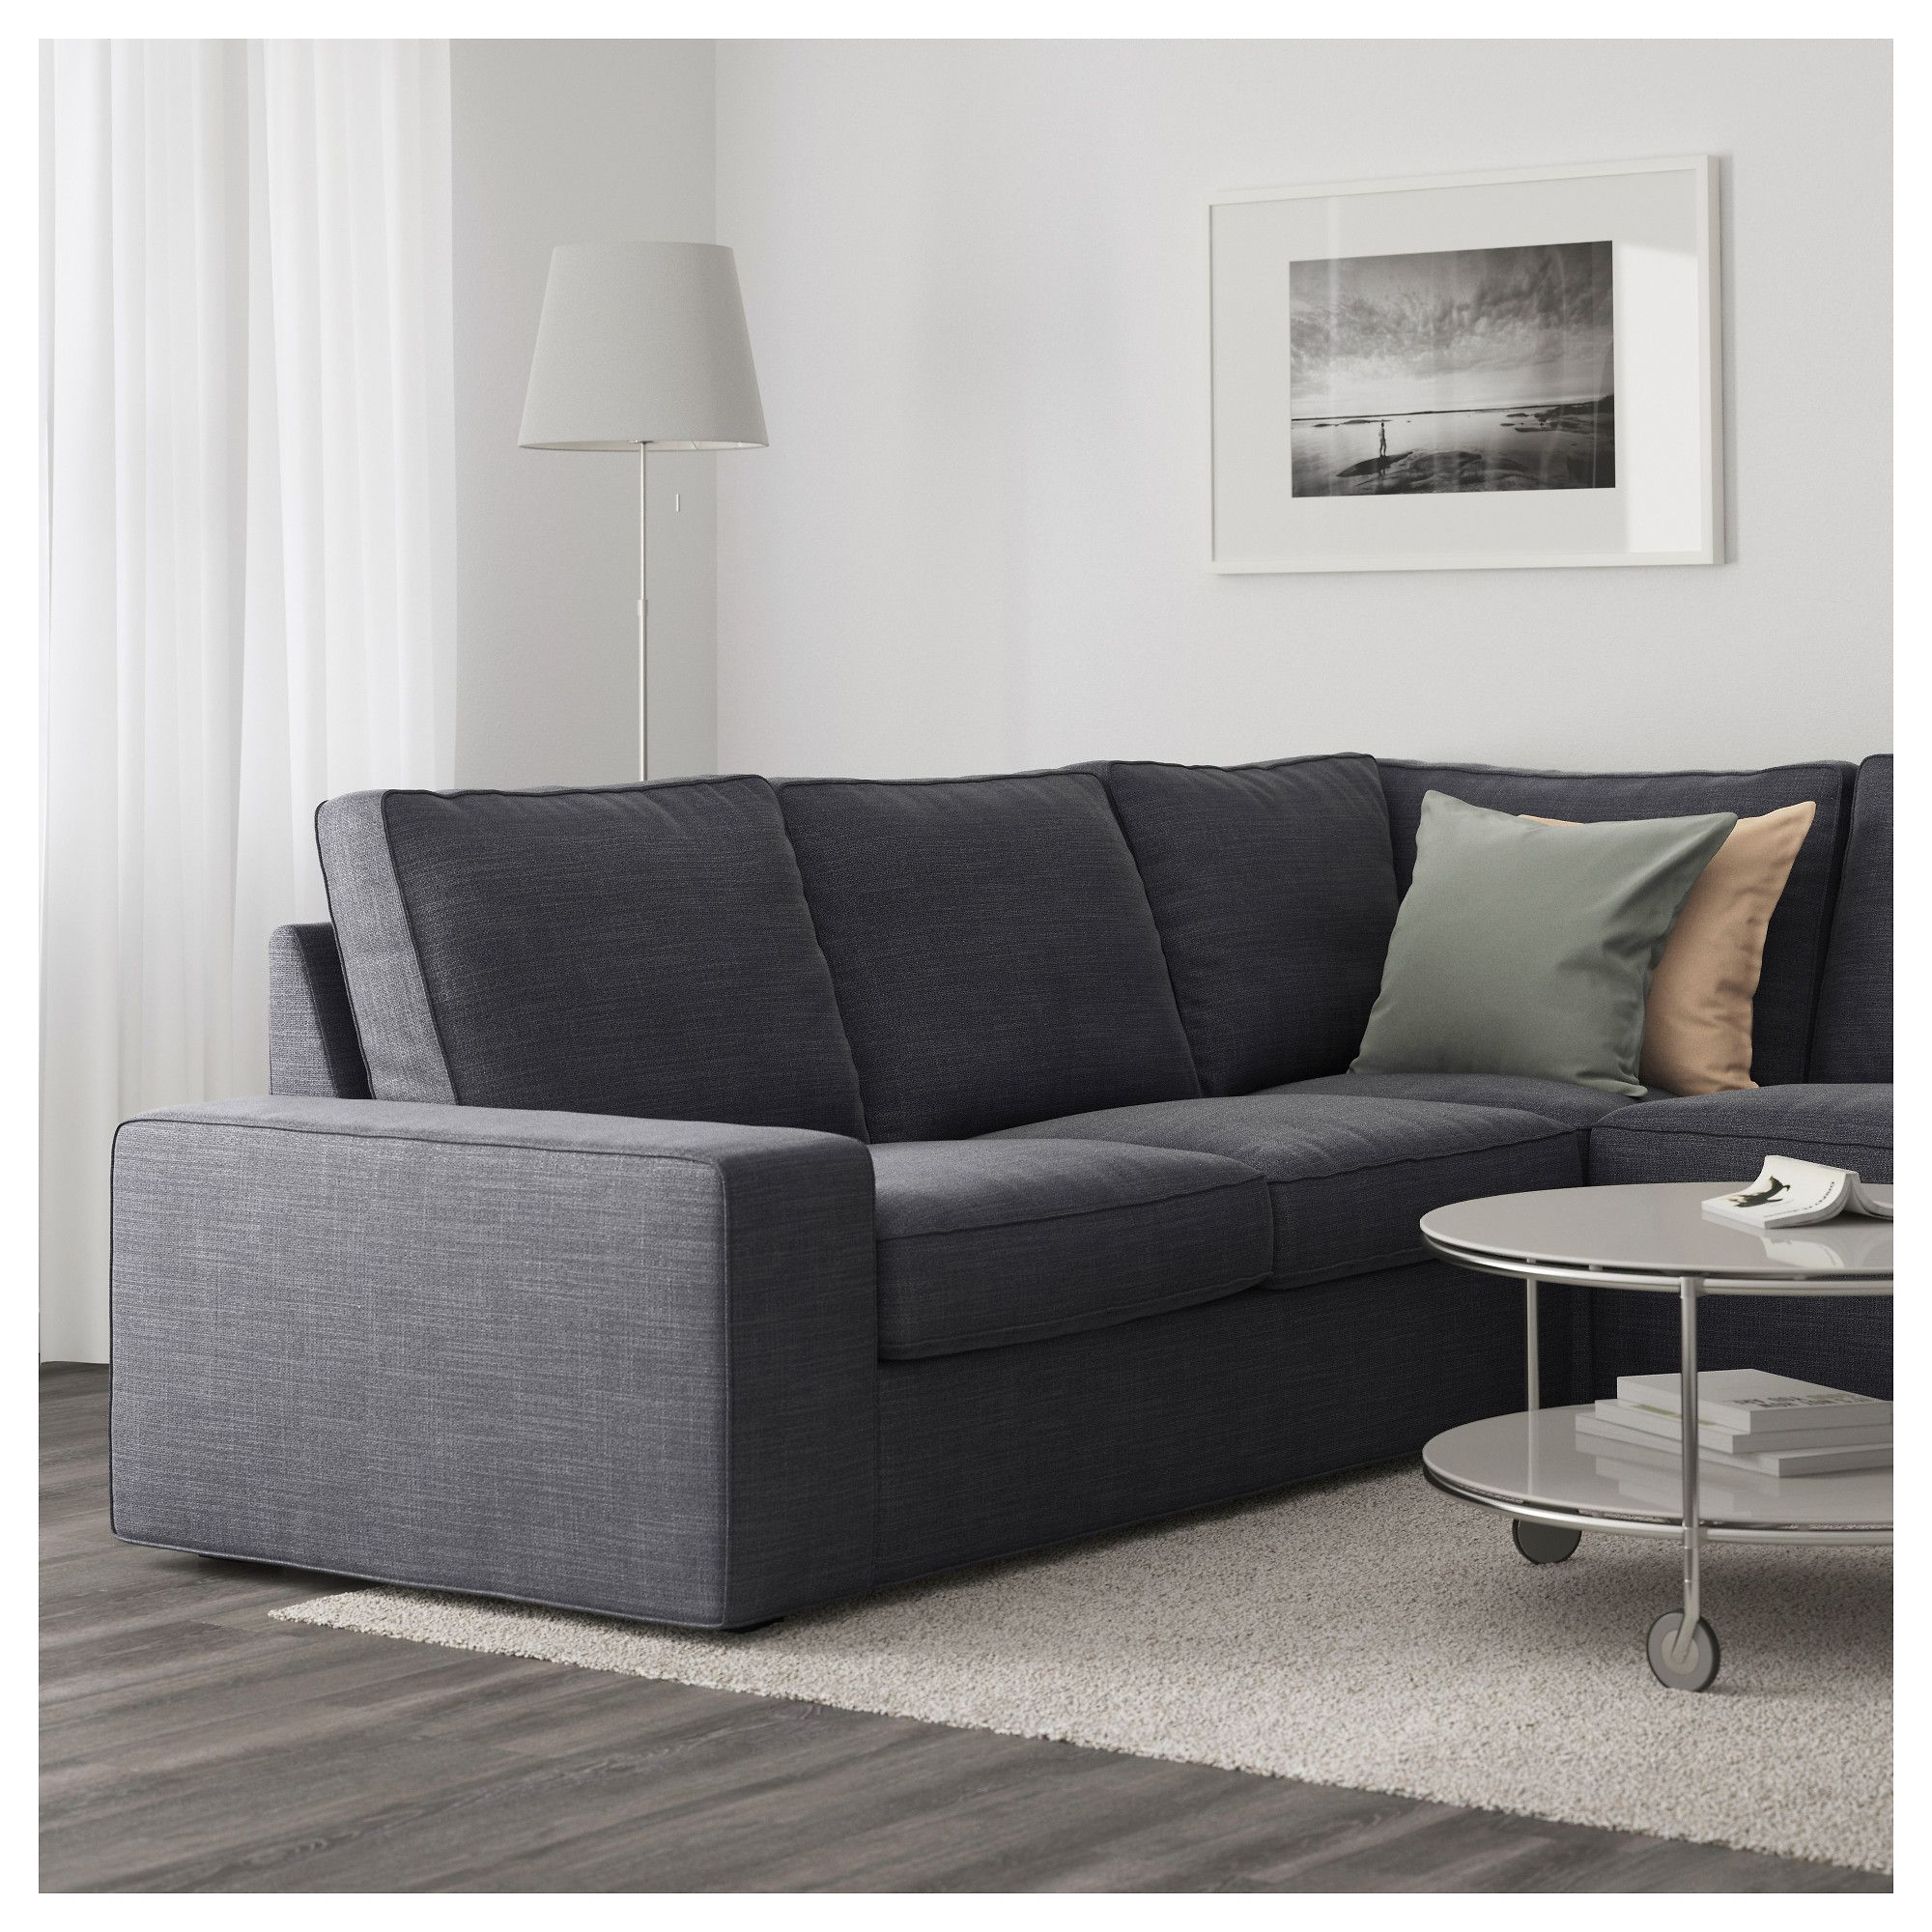 Canapé D'angle Ikea Kivik Furniture And Home Furnishings Sofas Design In 2019 Ikea